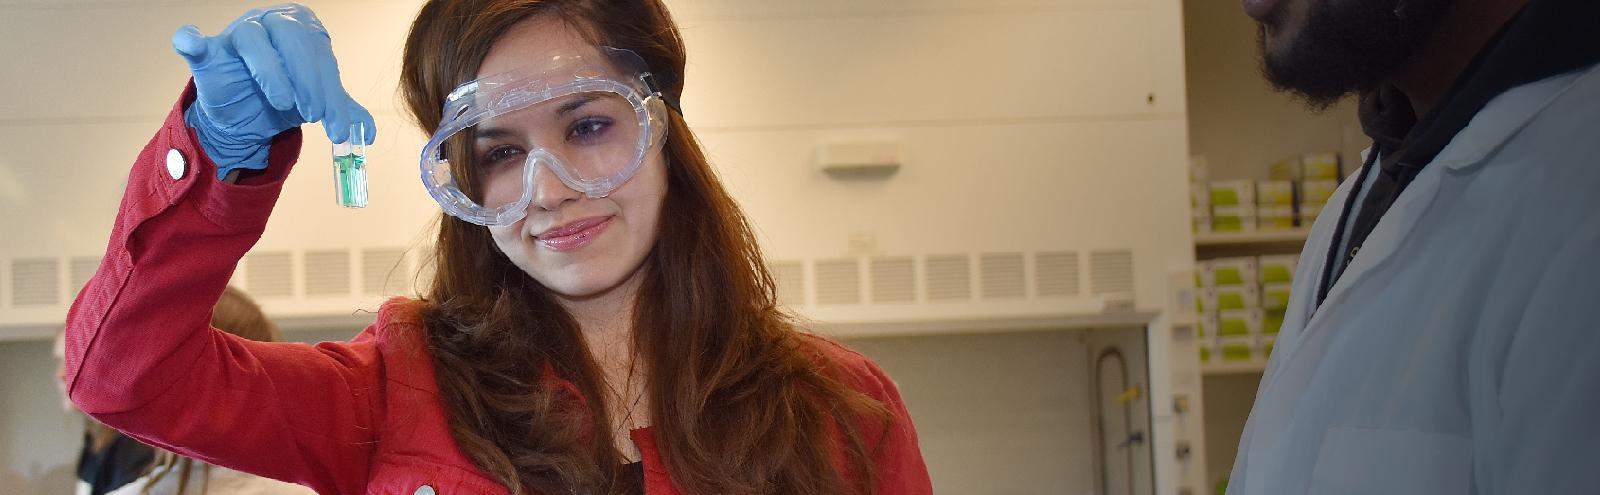 female student in protective eye wear in science lab